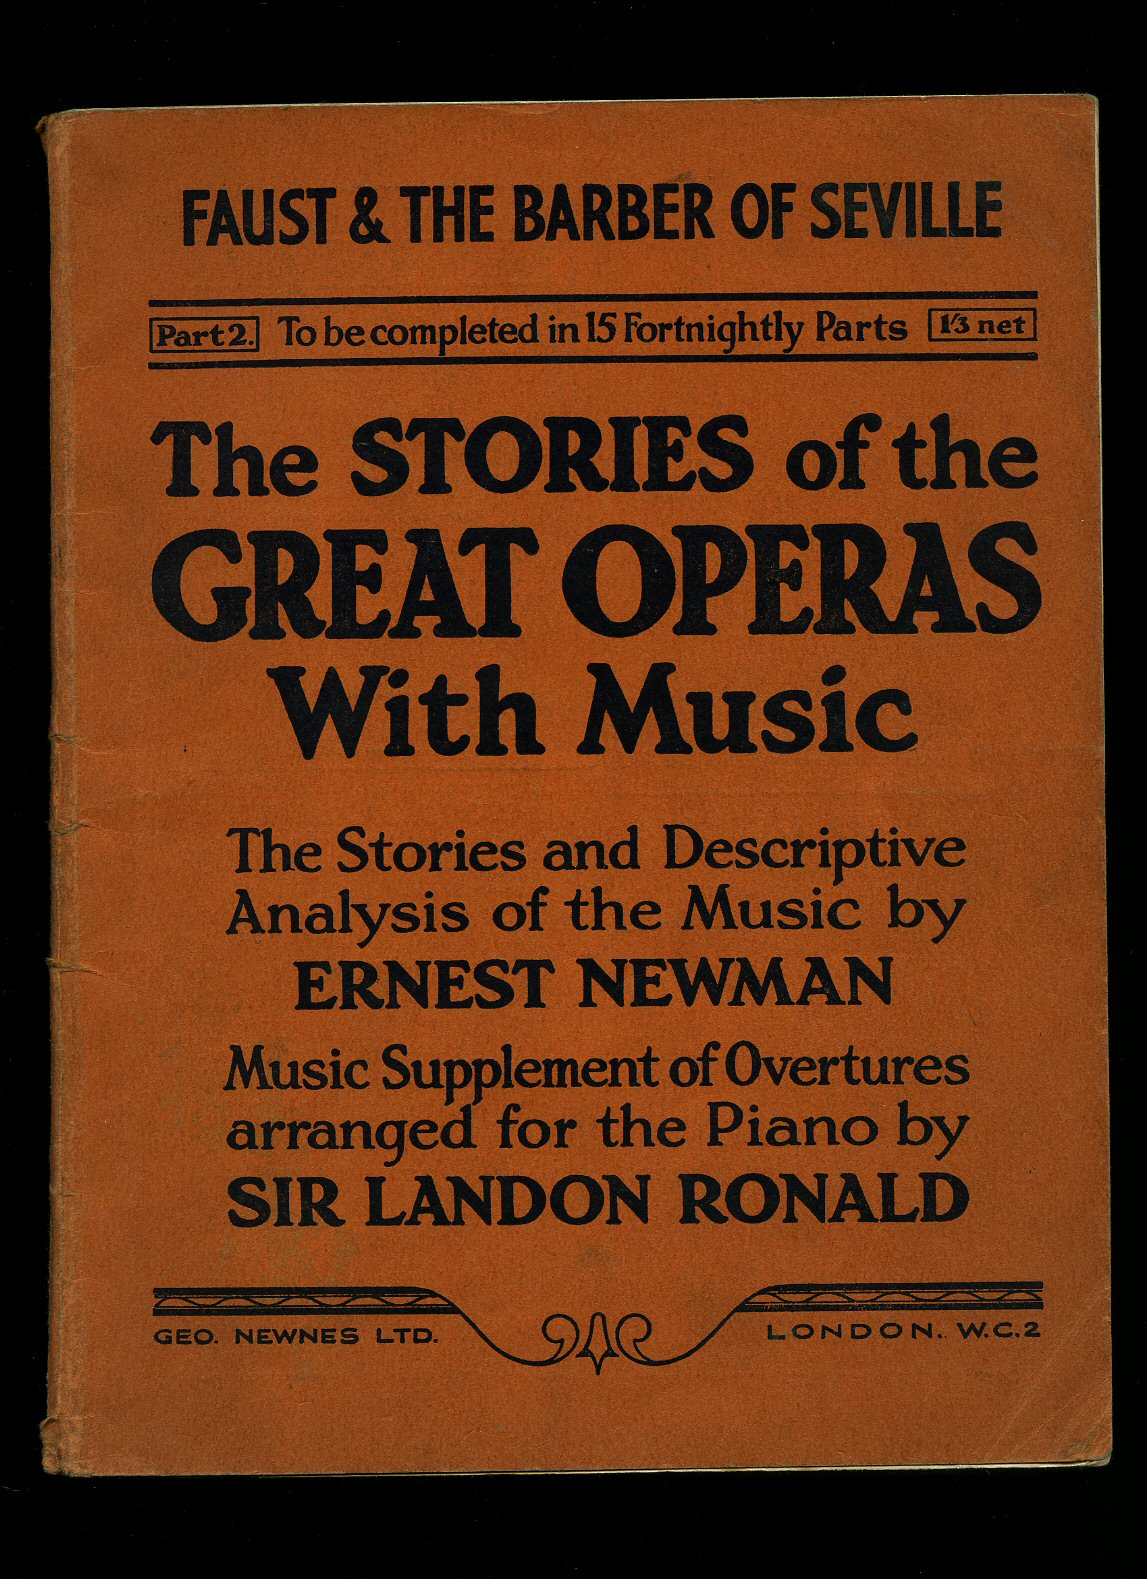 NEWMAN, ERNEST [MUSIC ARRANGED BY SIR LANDON RONALD] - The Stories of the Great Operas with Music Part 2; Faust and The Barber of Seville [Vintage Piano Sheet Music]